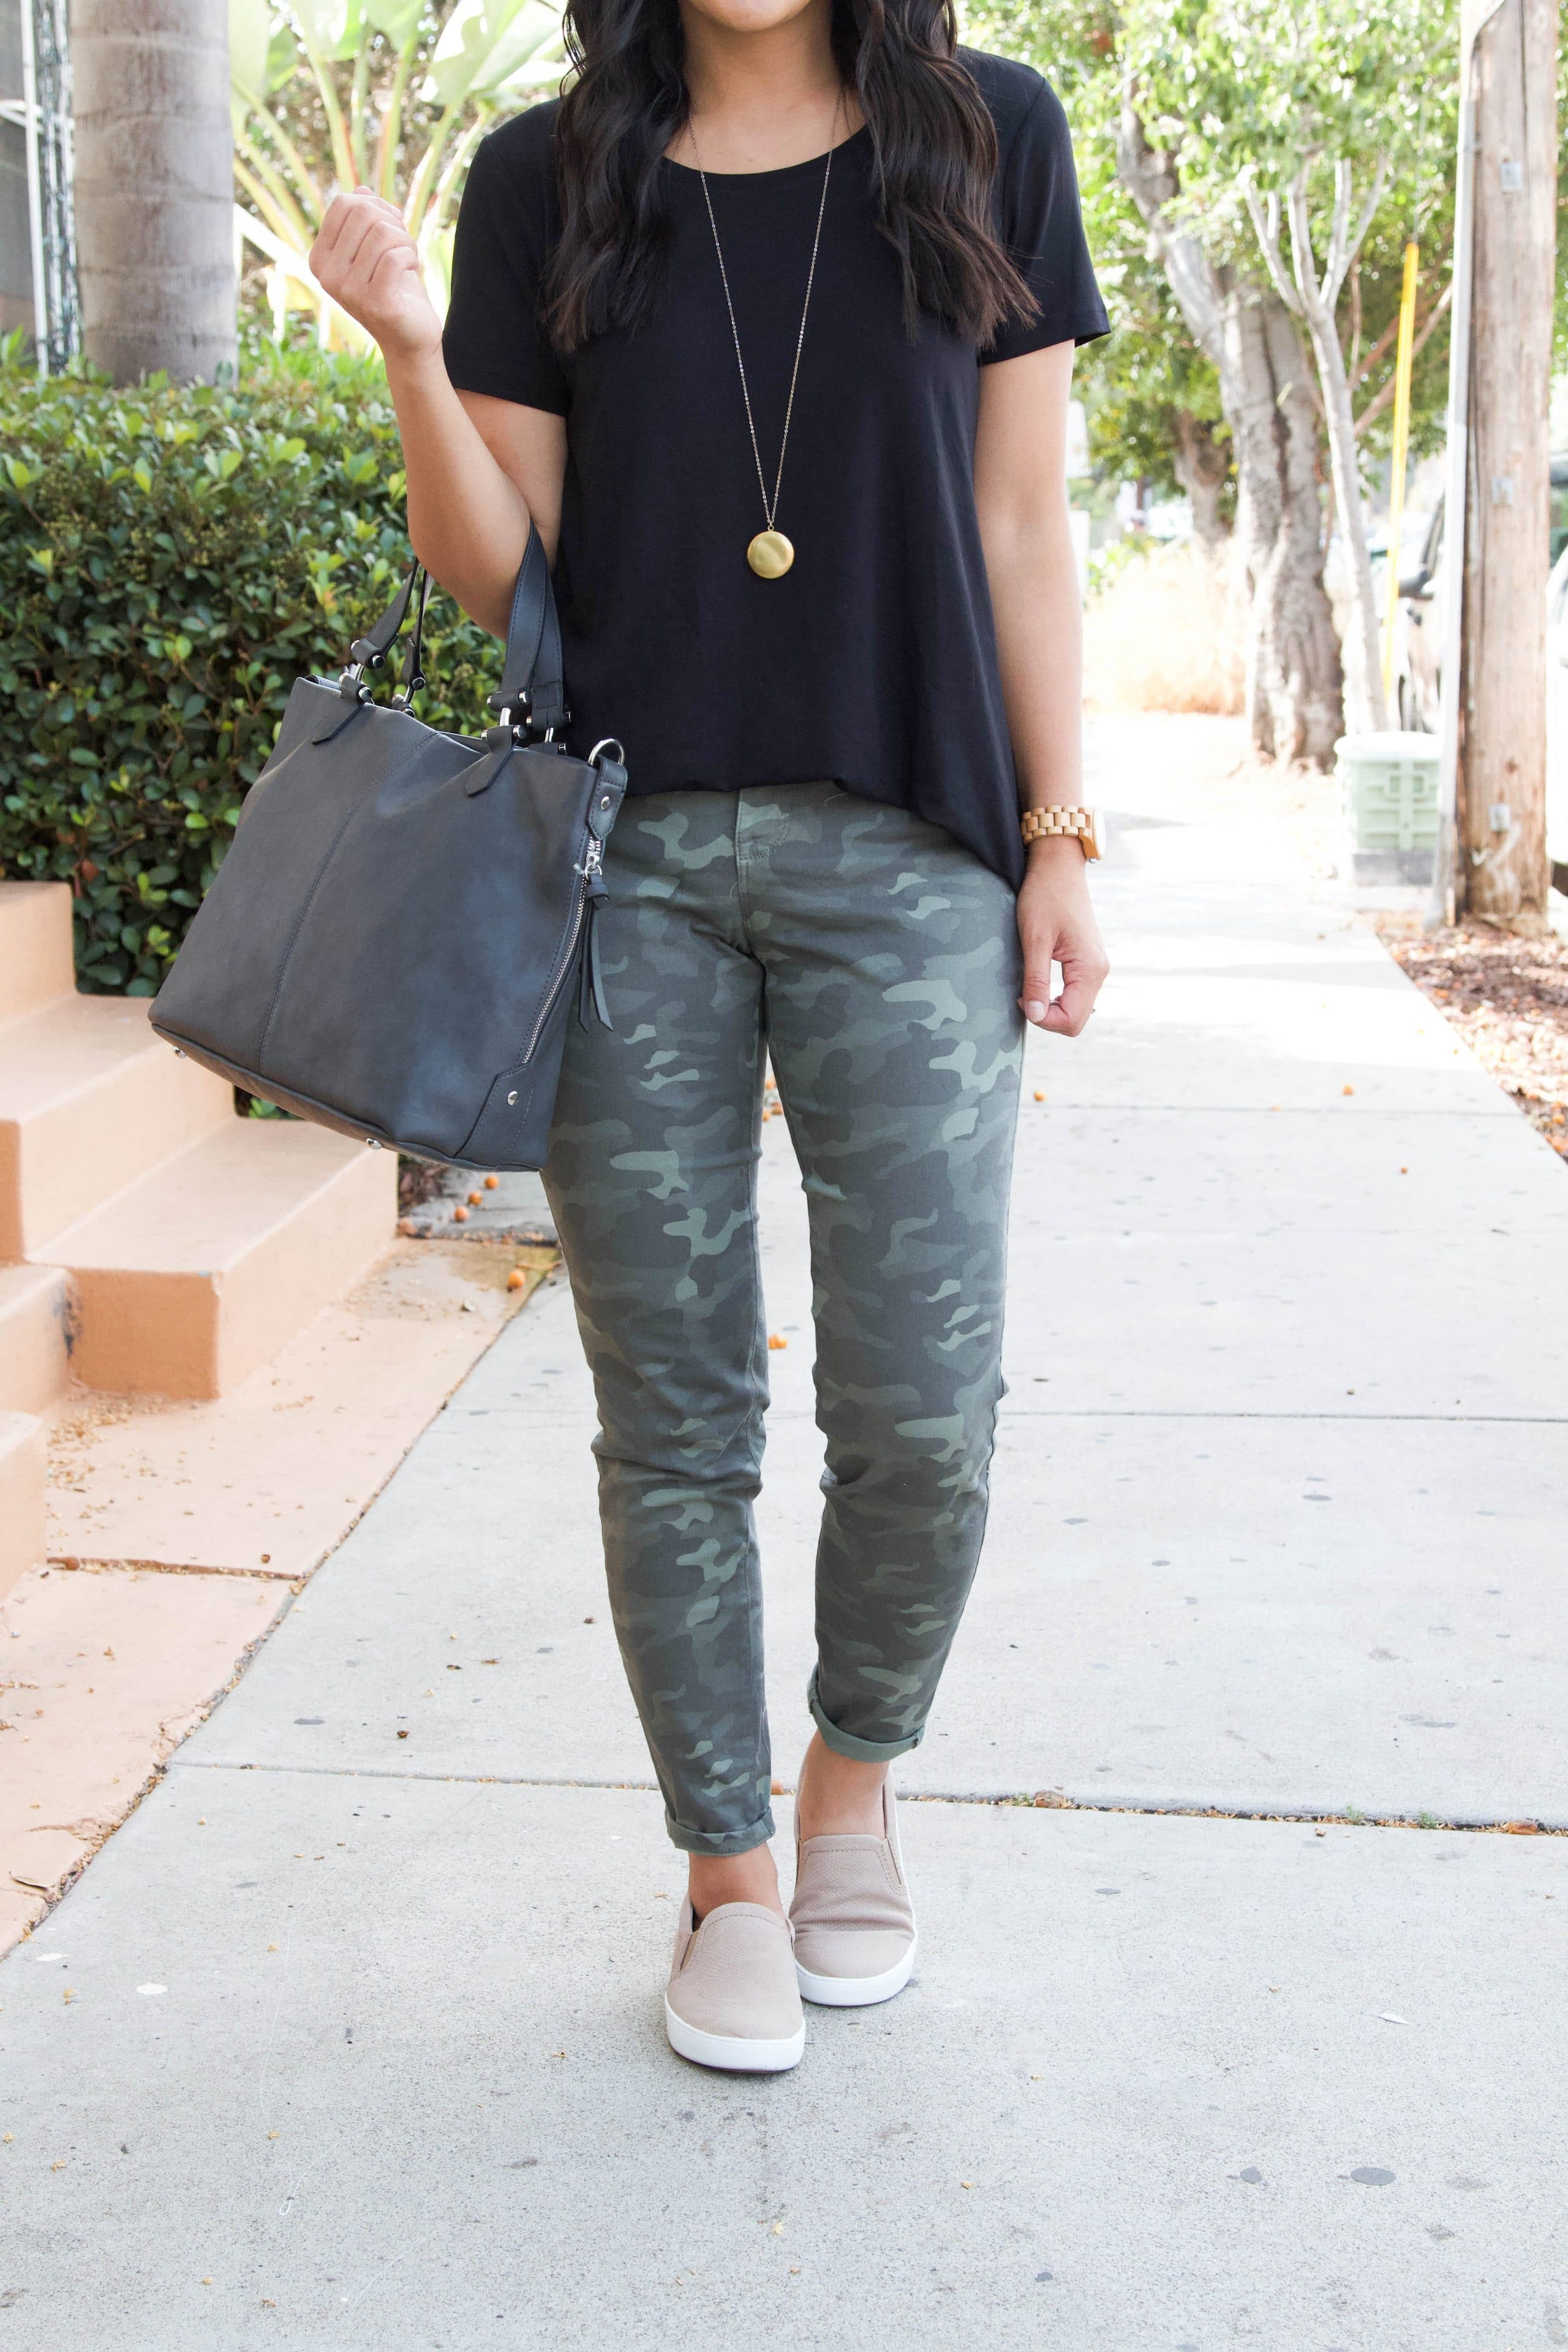 black top + taupe sneakers + grey tote + green camo pants